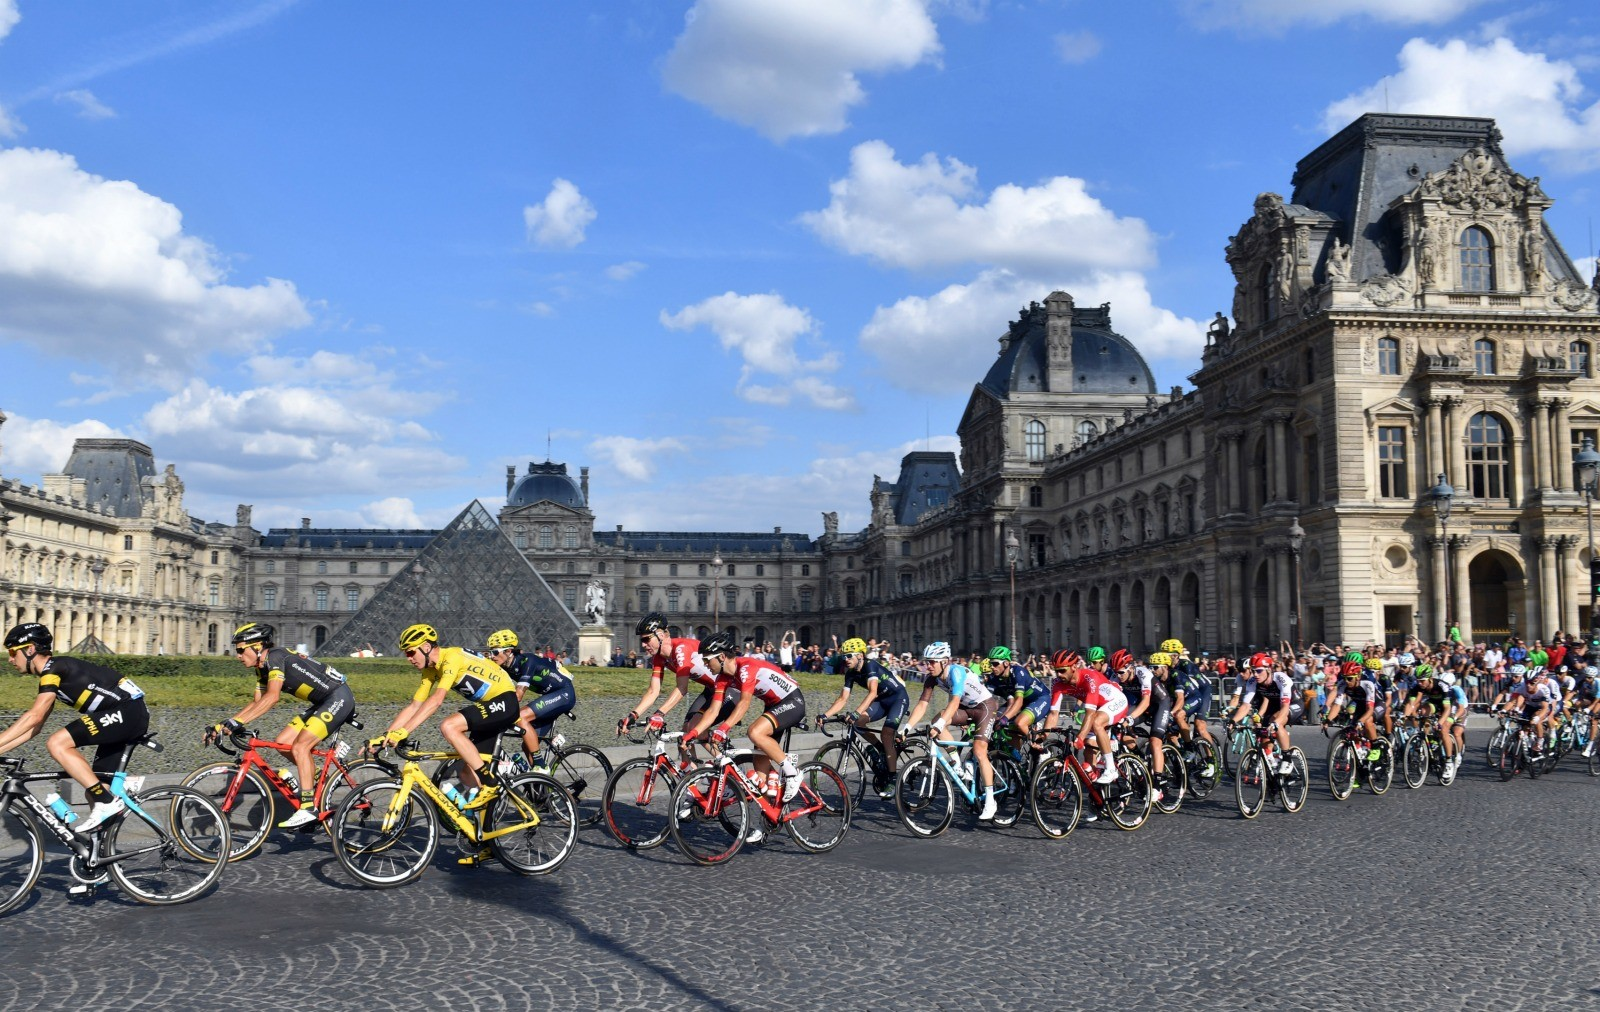 Chris Froome rides past the Louvre in the yellow jersey